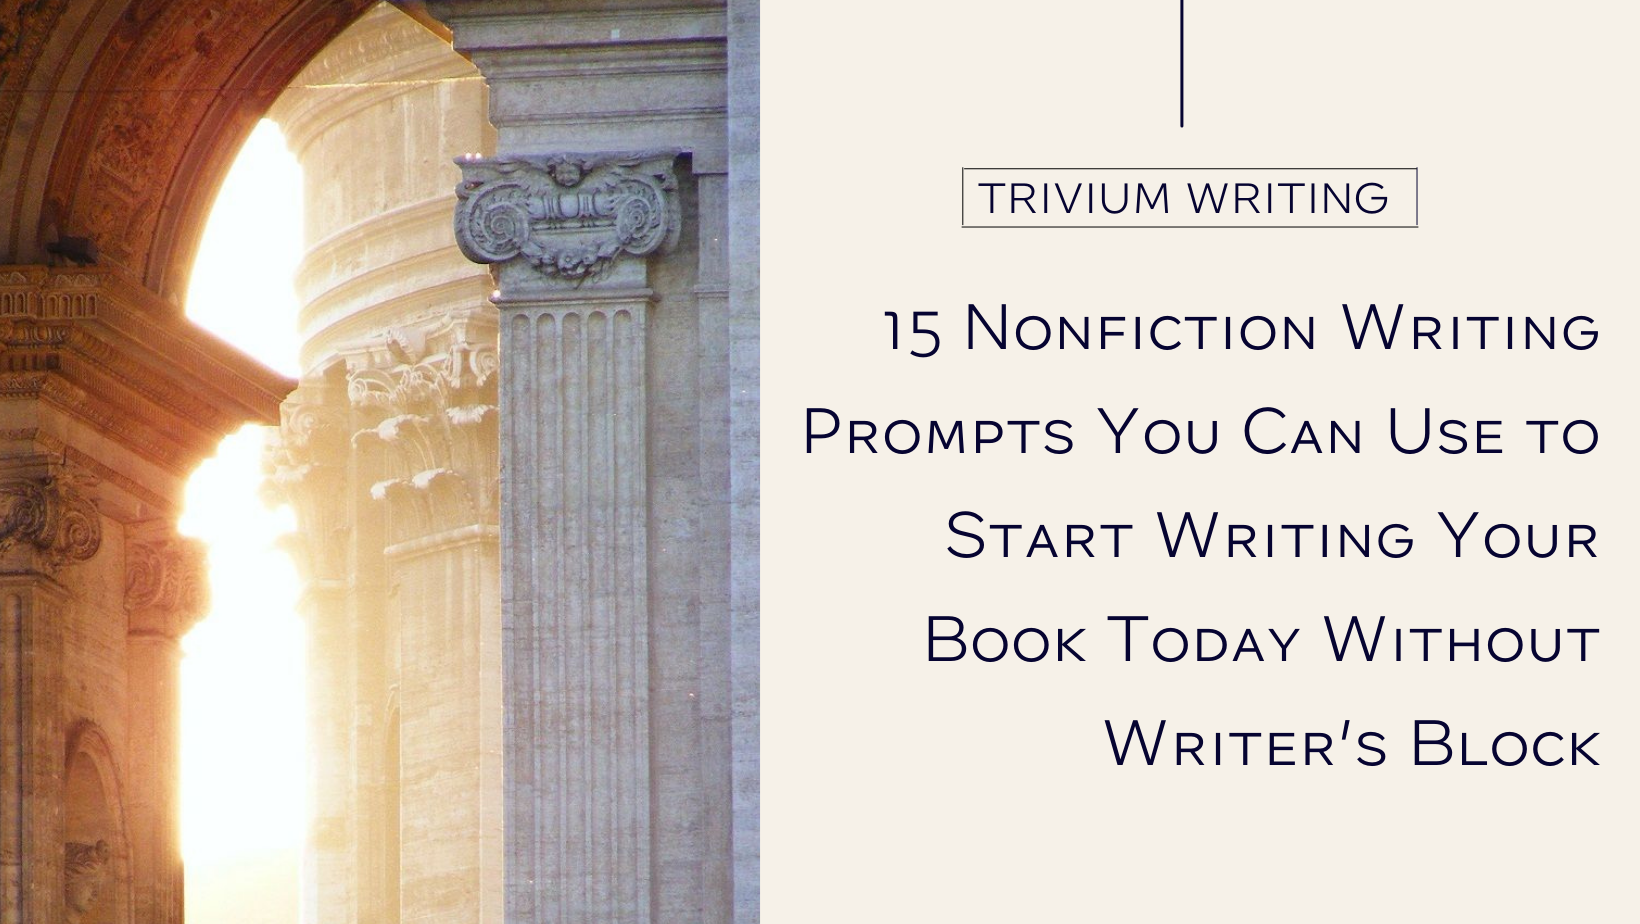 15 Nonfiction Writing Prompts You Can Use to Start Writing Your Book Today